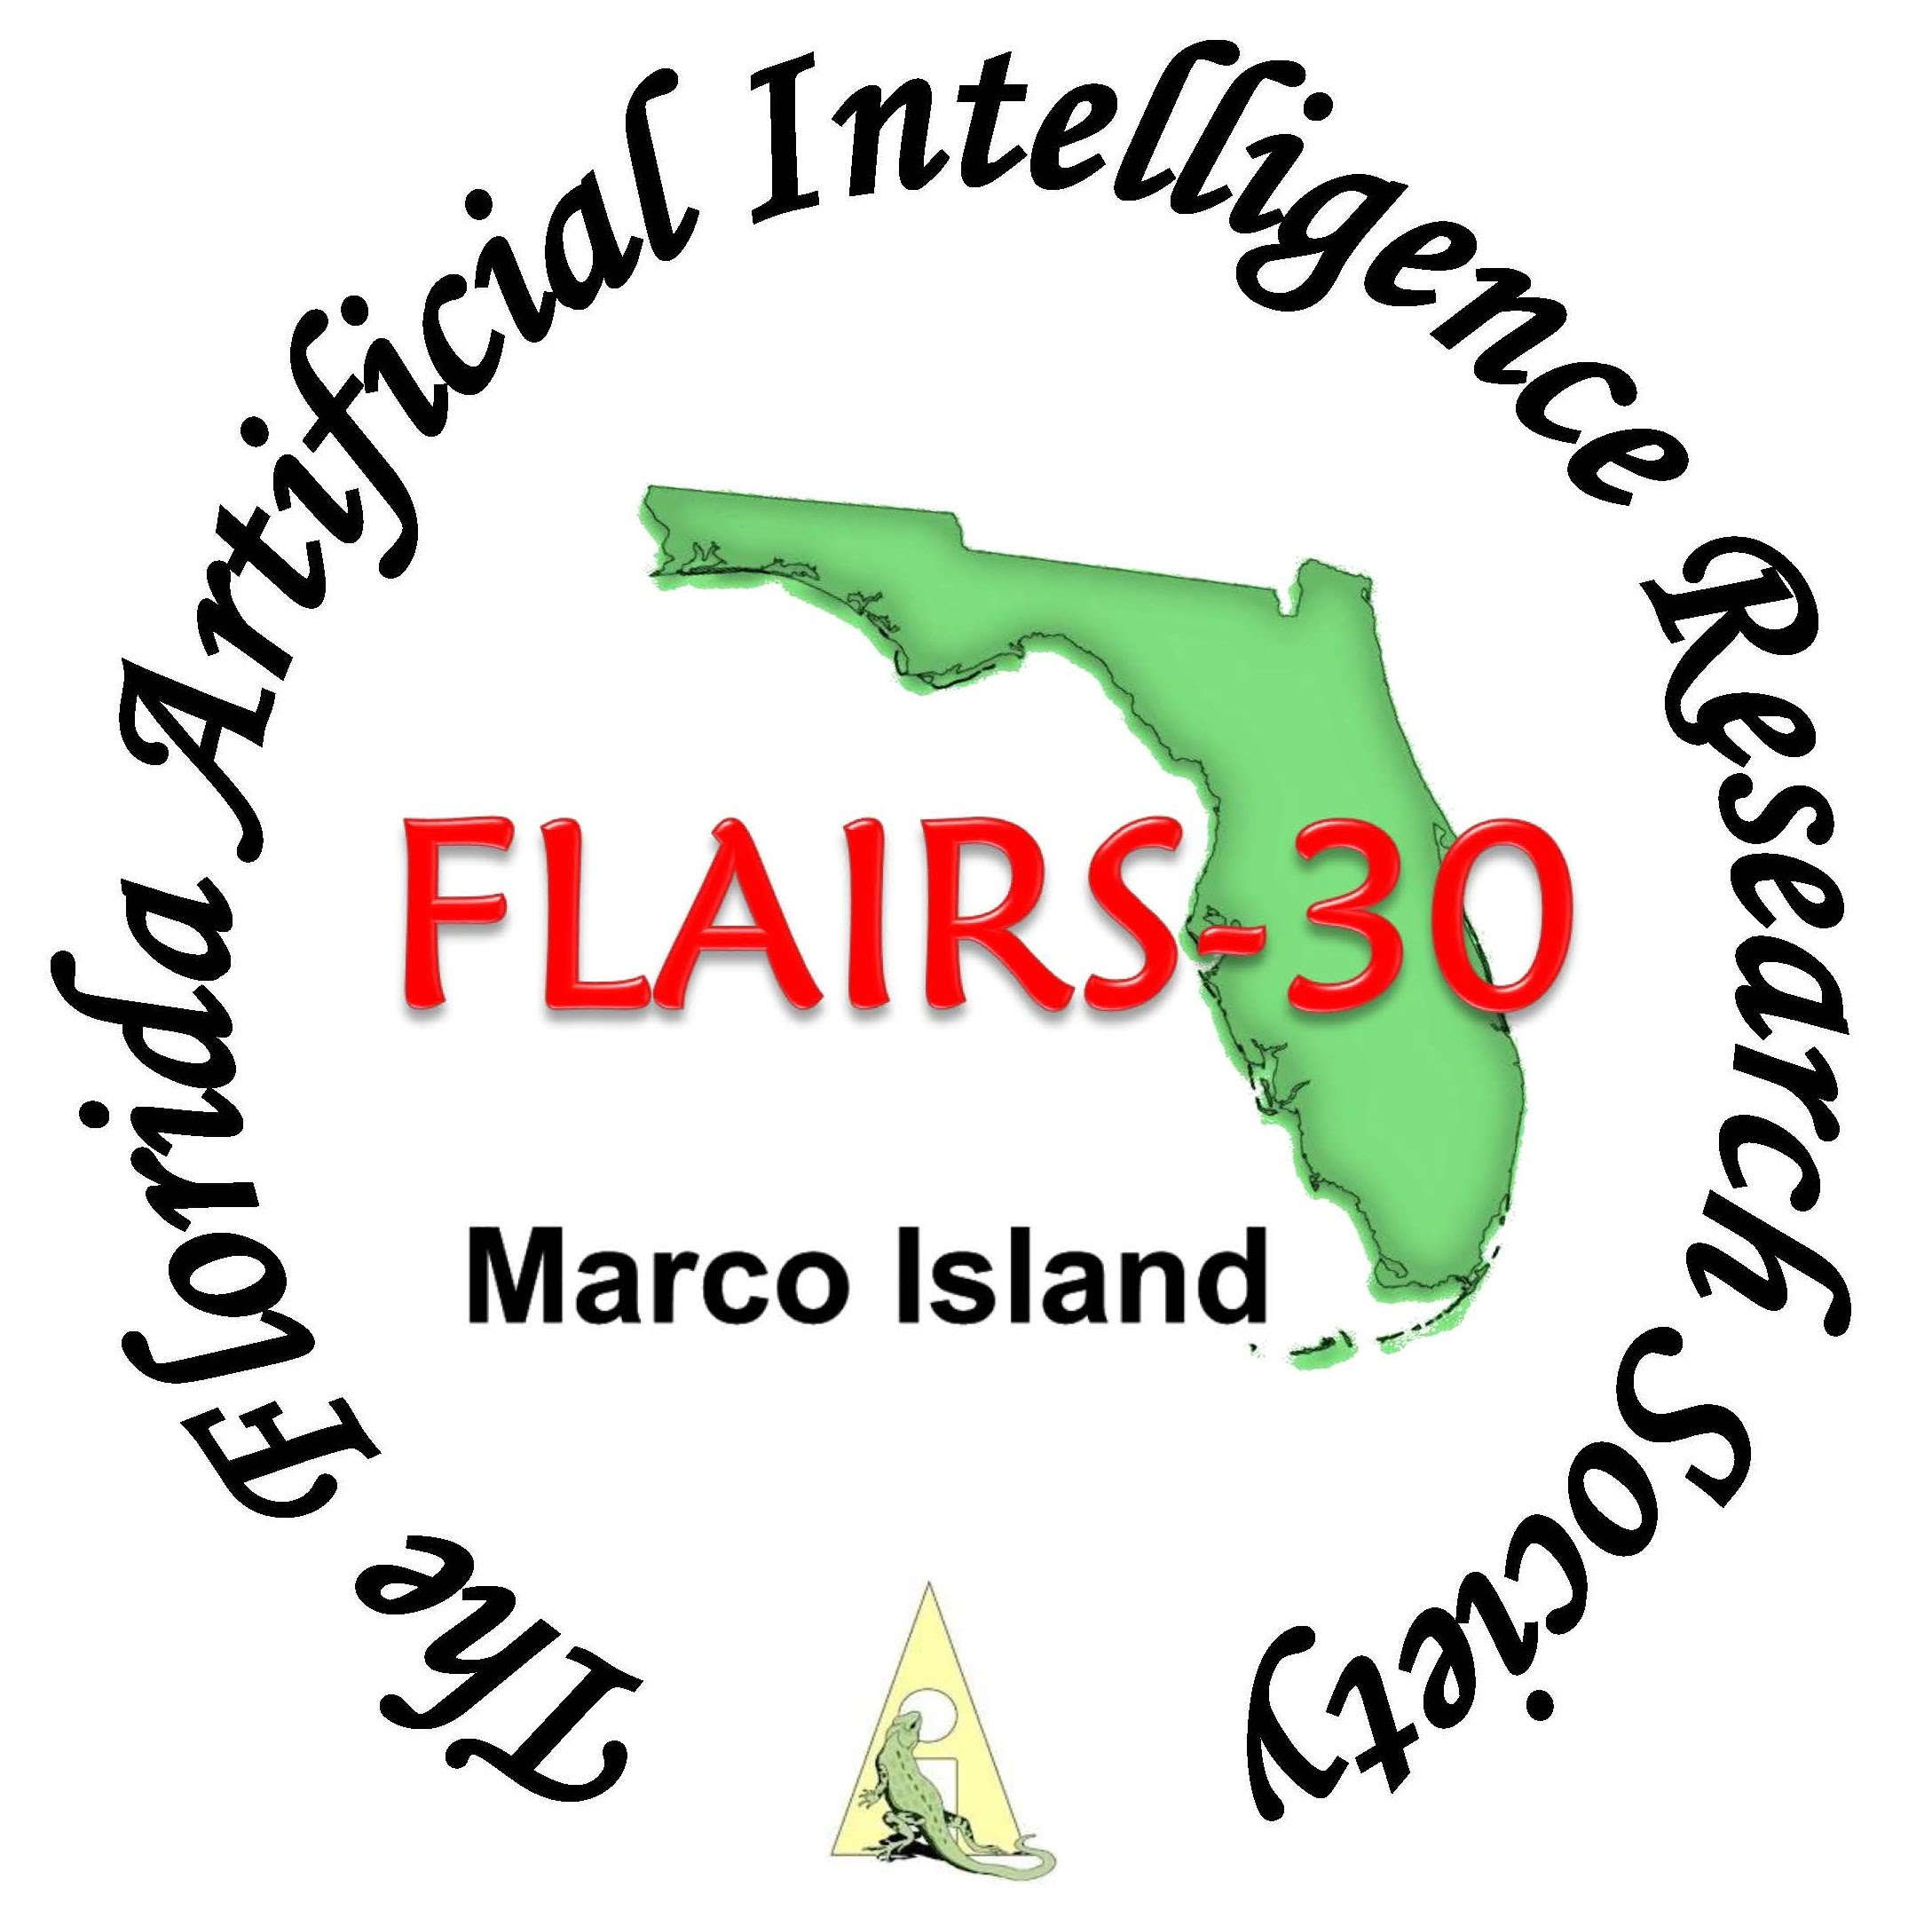 http://www.flairs-30.info